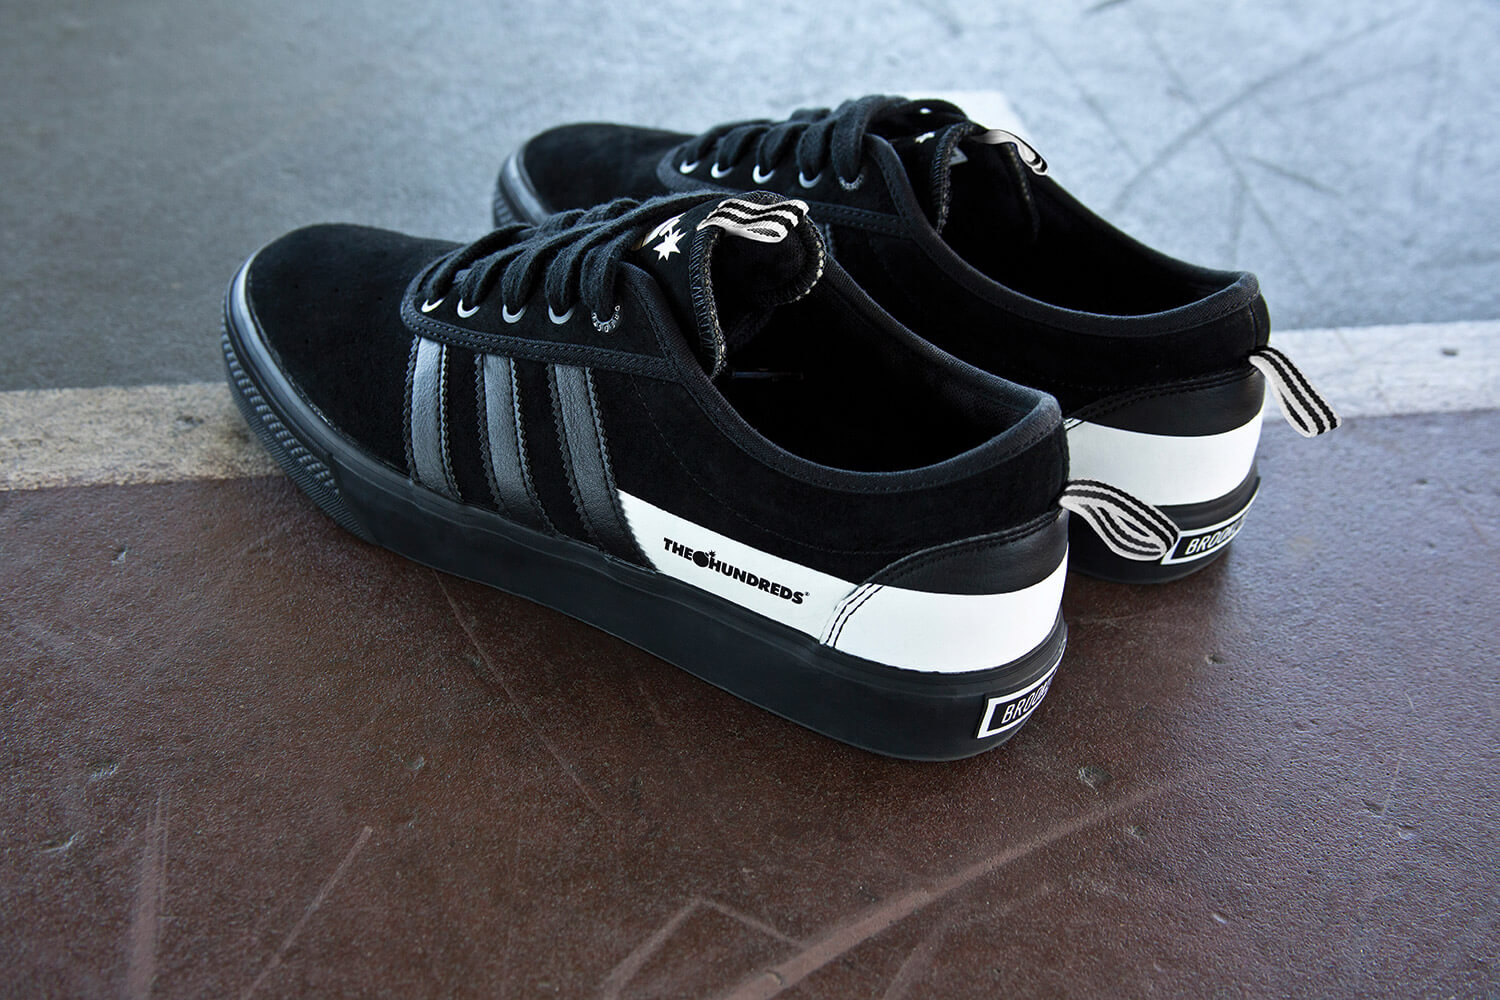 Adidas Skateboarding x The Hundreds, Black Sneakers